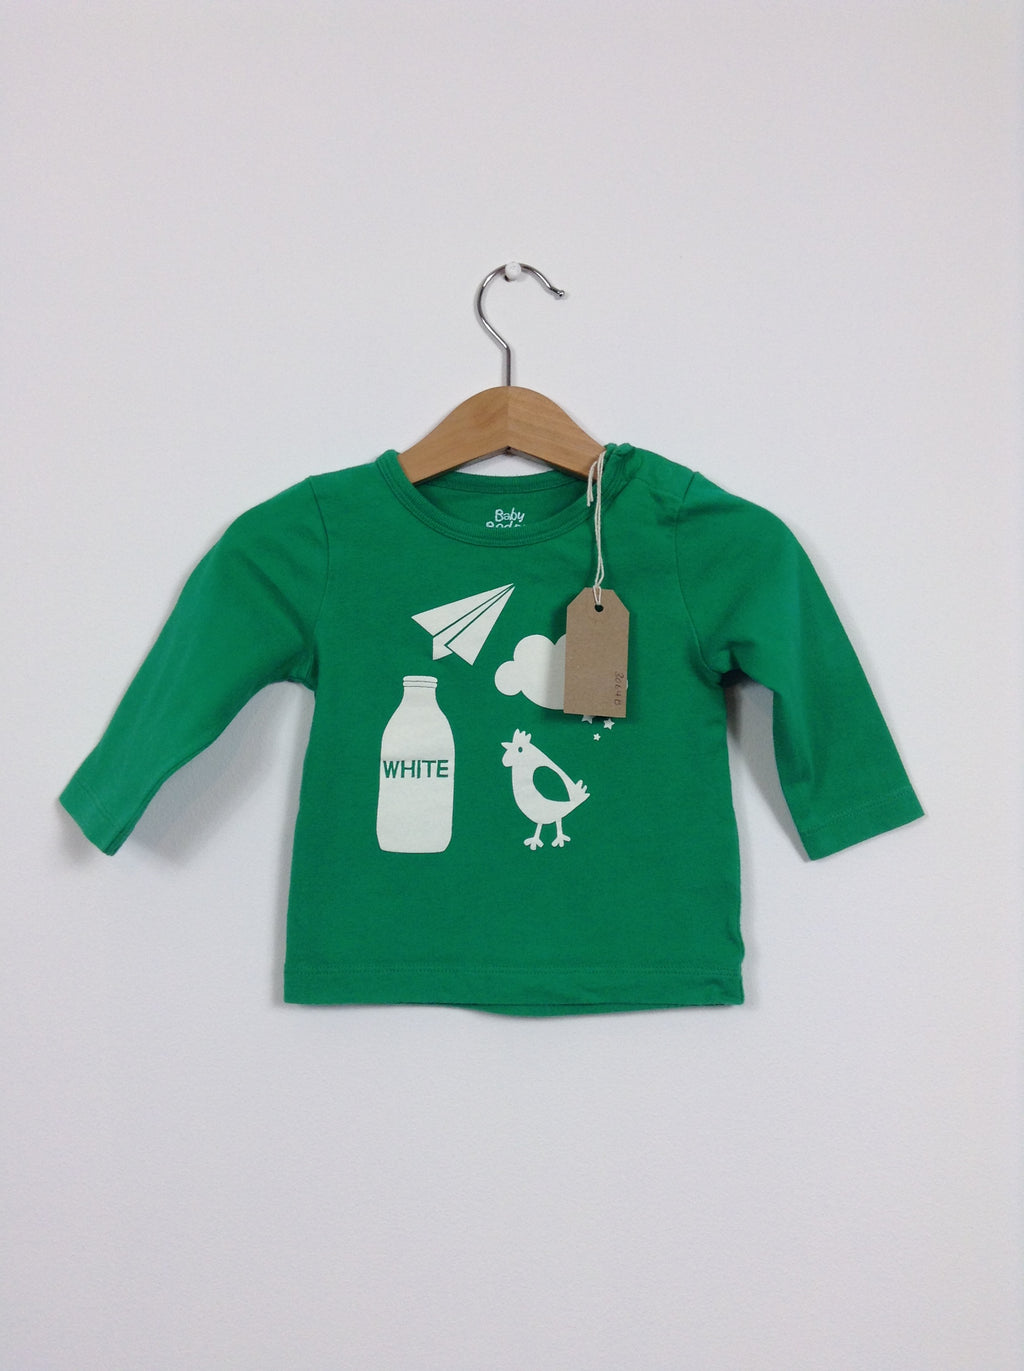 Green Long Sleeved Farm Print Top (Age 3-6 Months)